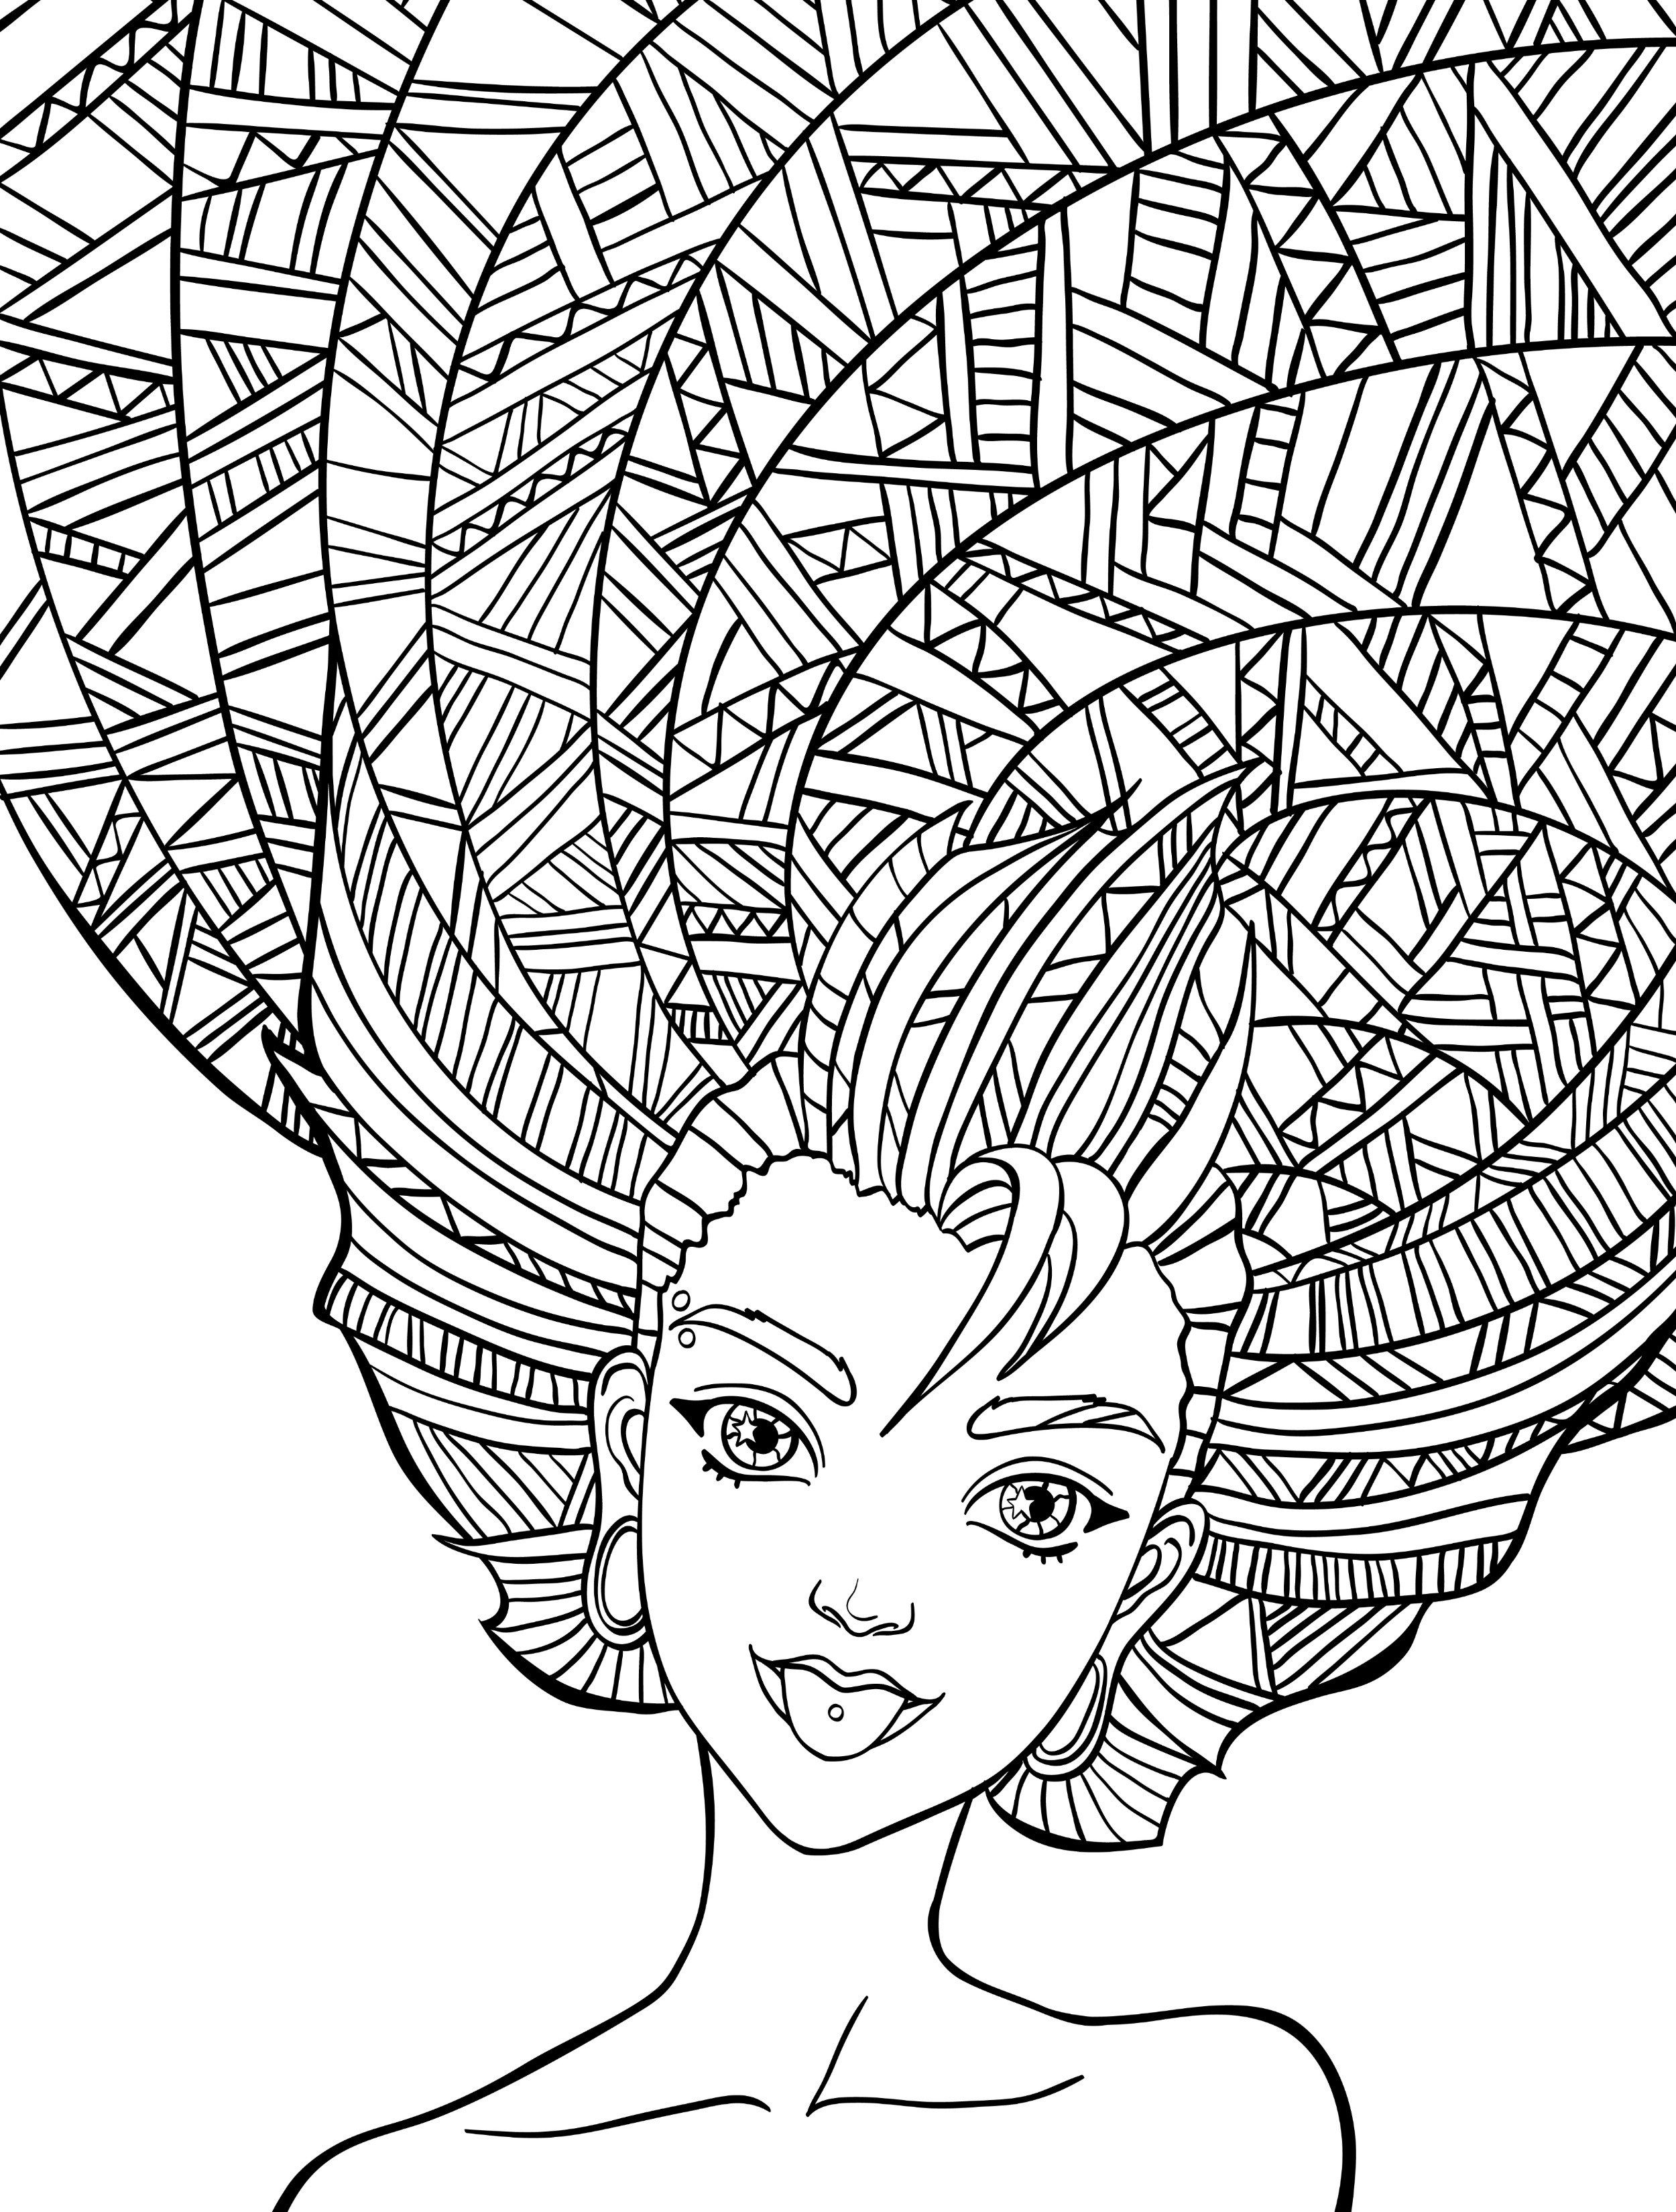 Rainbow magic weather fairies coloring pages - 10 Crazy Hair Adult Coloring Pages Page 9 Of 12